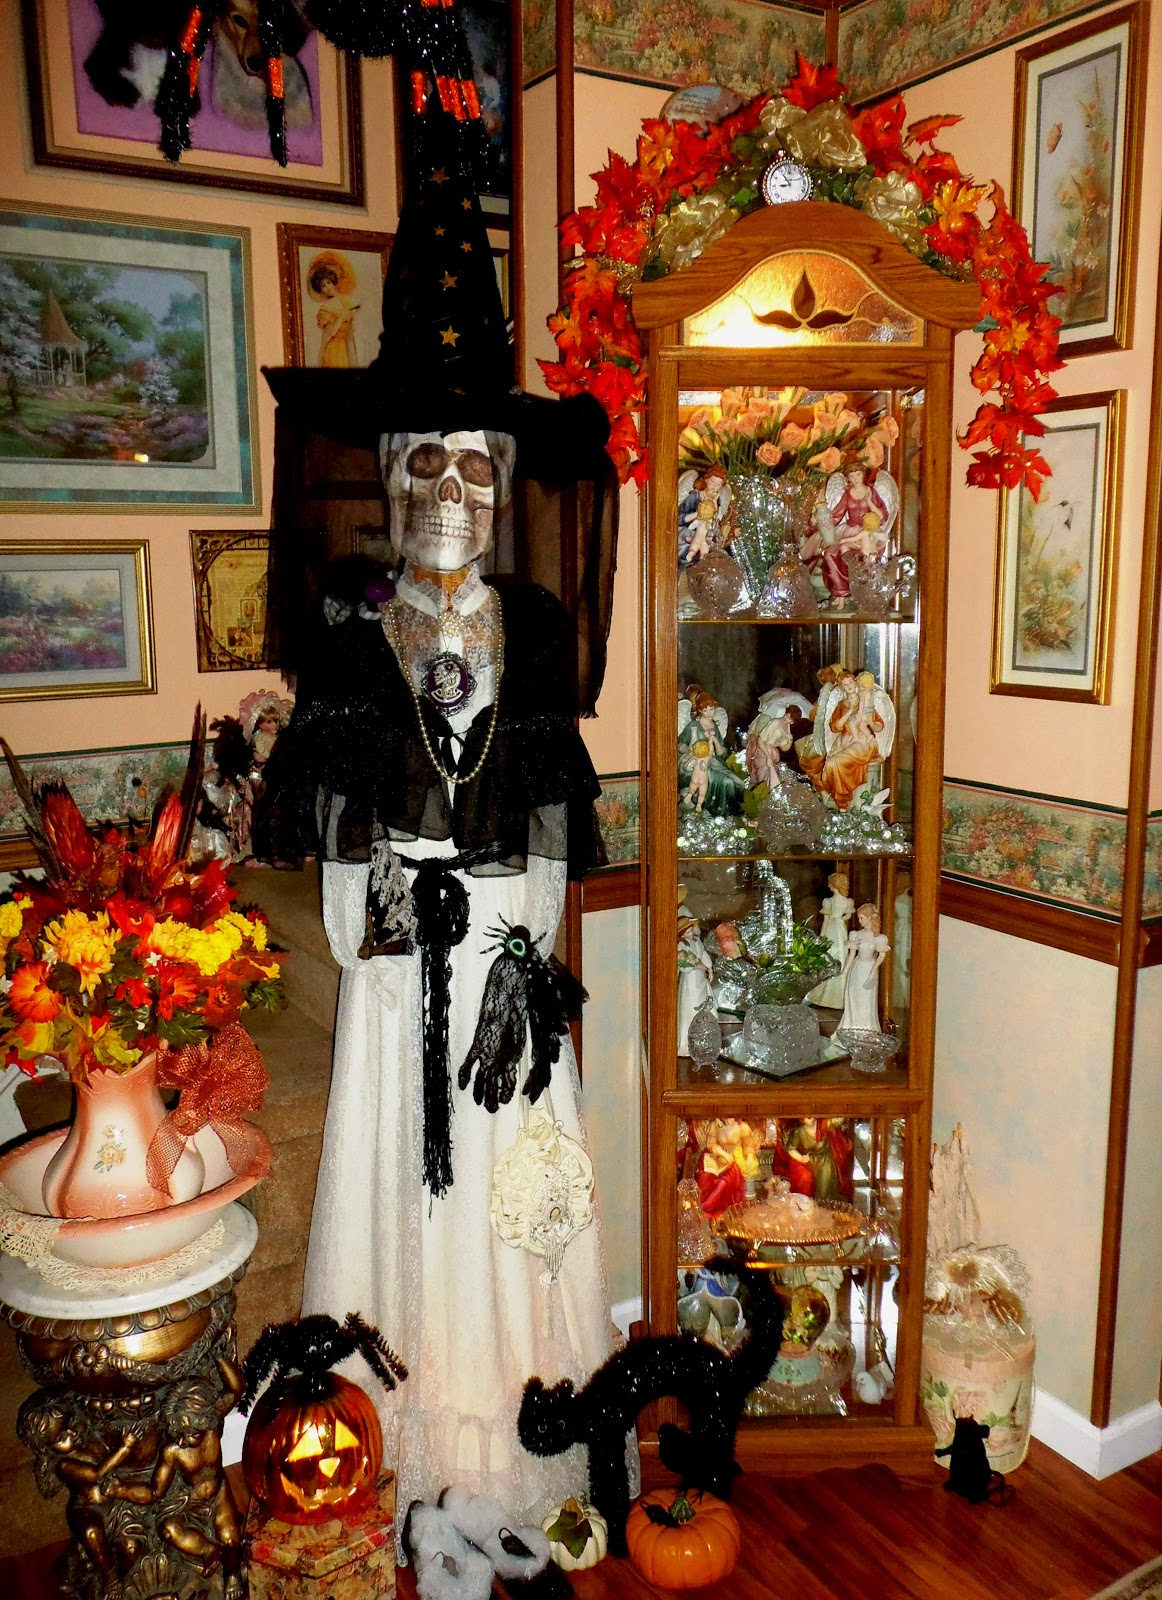 Scary Halloween Room Decorations